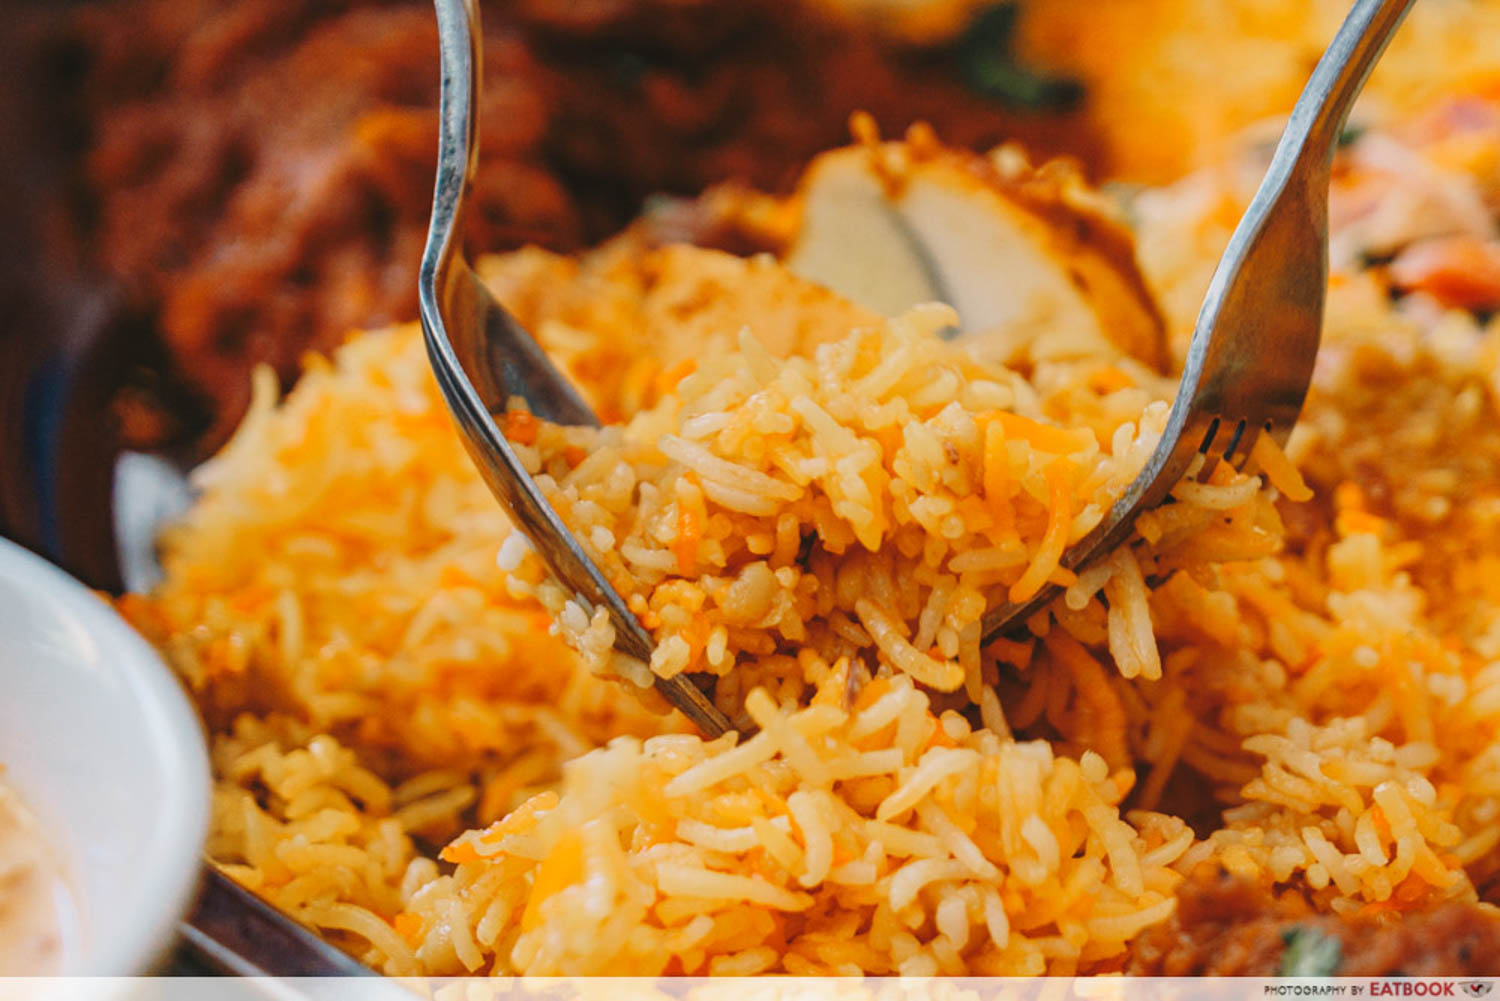 Papa's Kitchen - Briyani rice